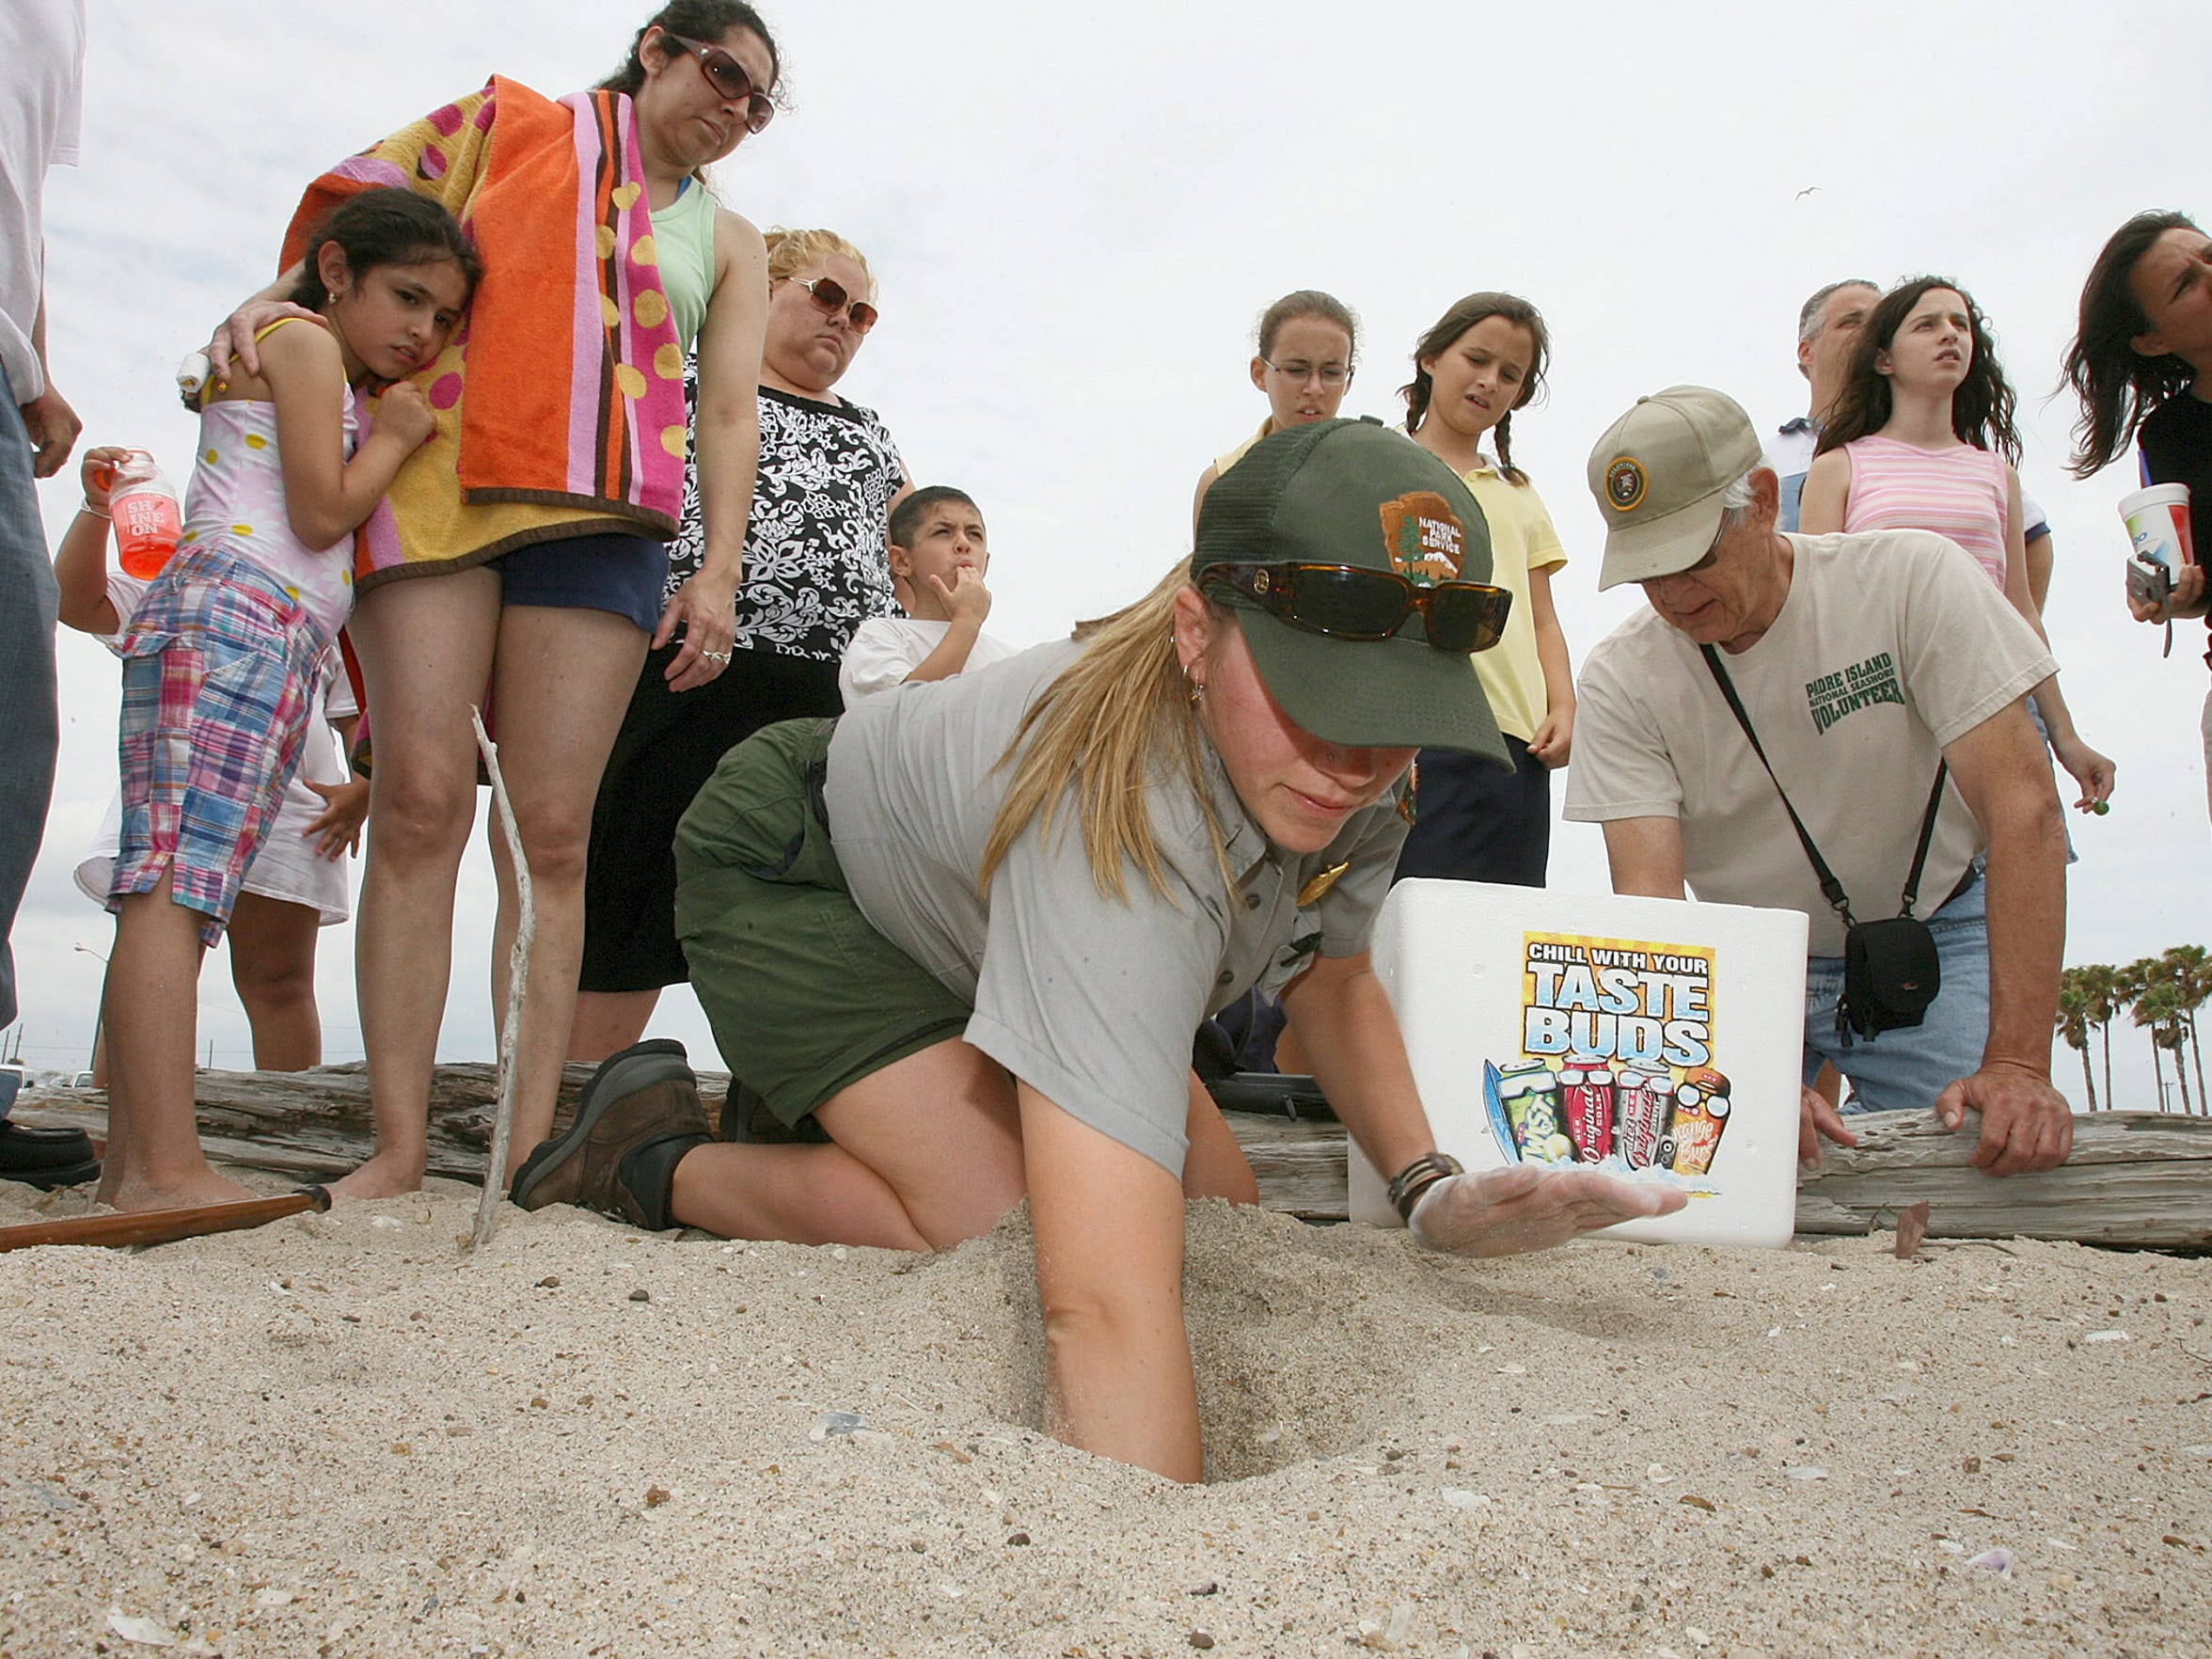 Beach goers on North Beach gather around to watch a turtle patroller on Padre Island National Seashore remove Kemp's ridley sea turtle eggs from a nest.